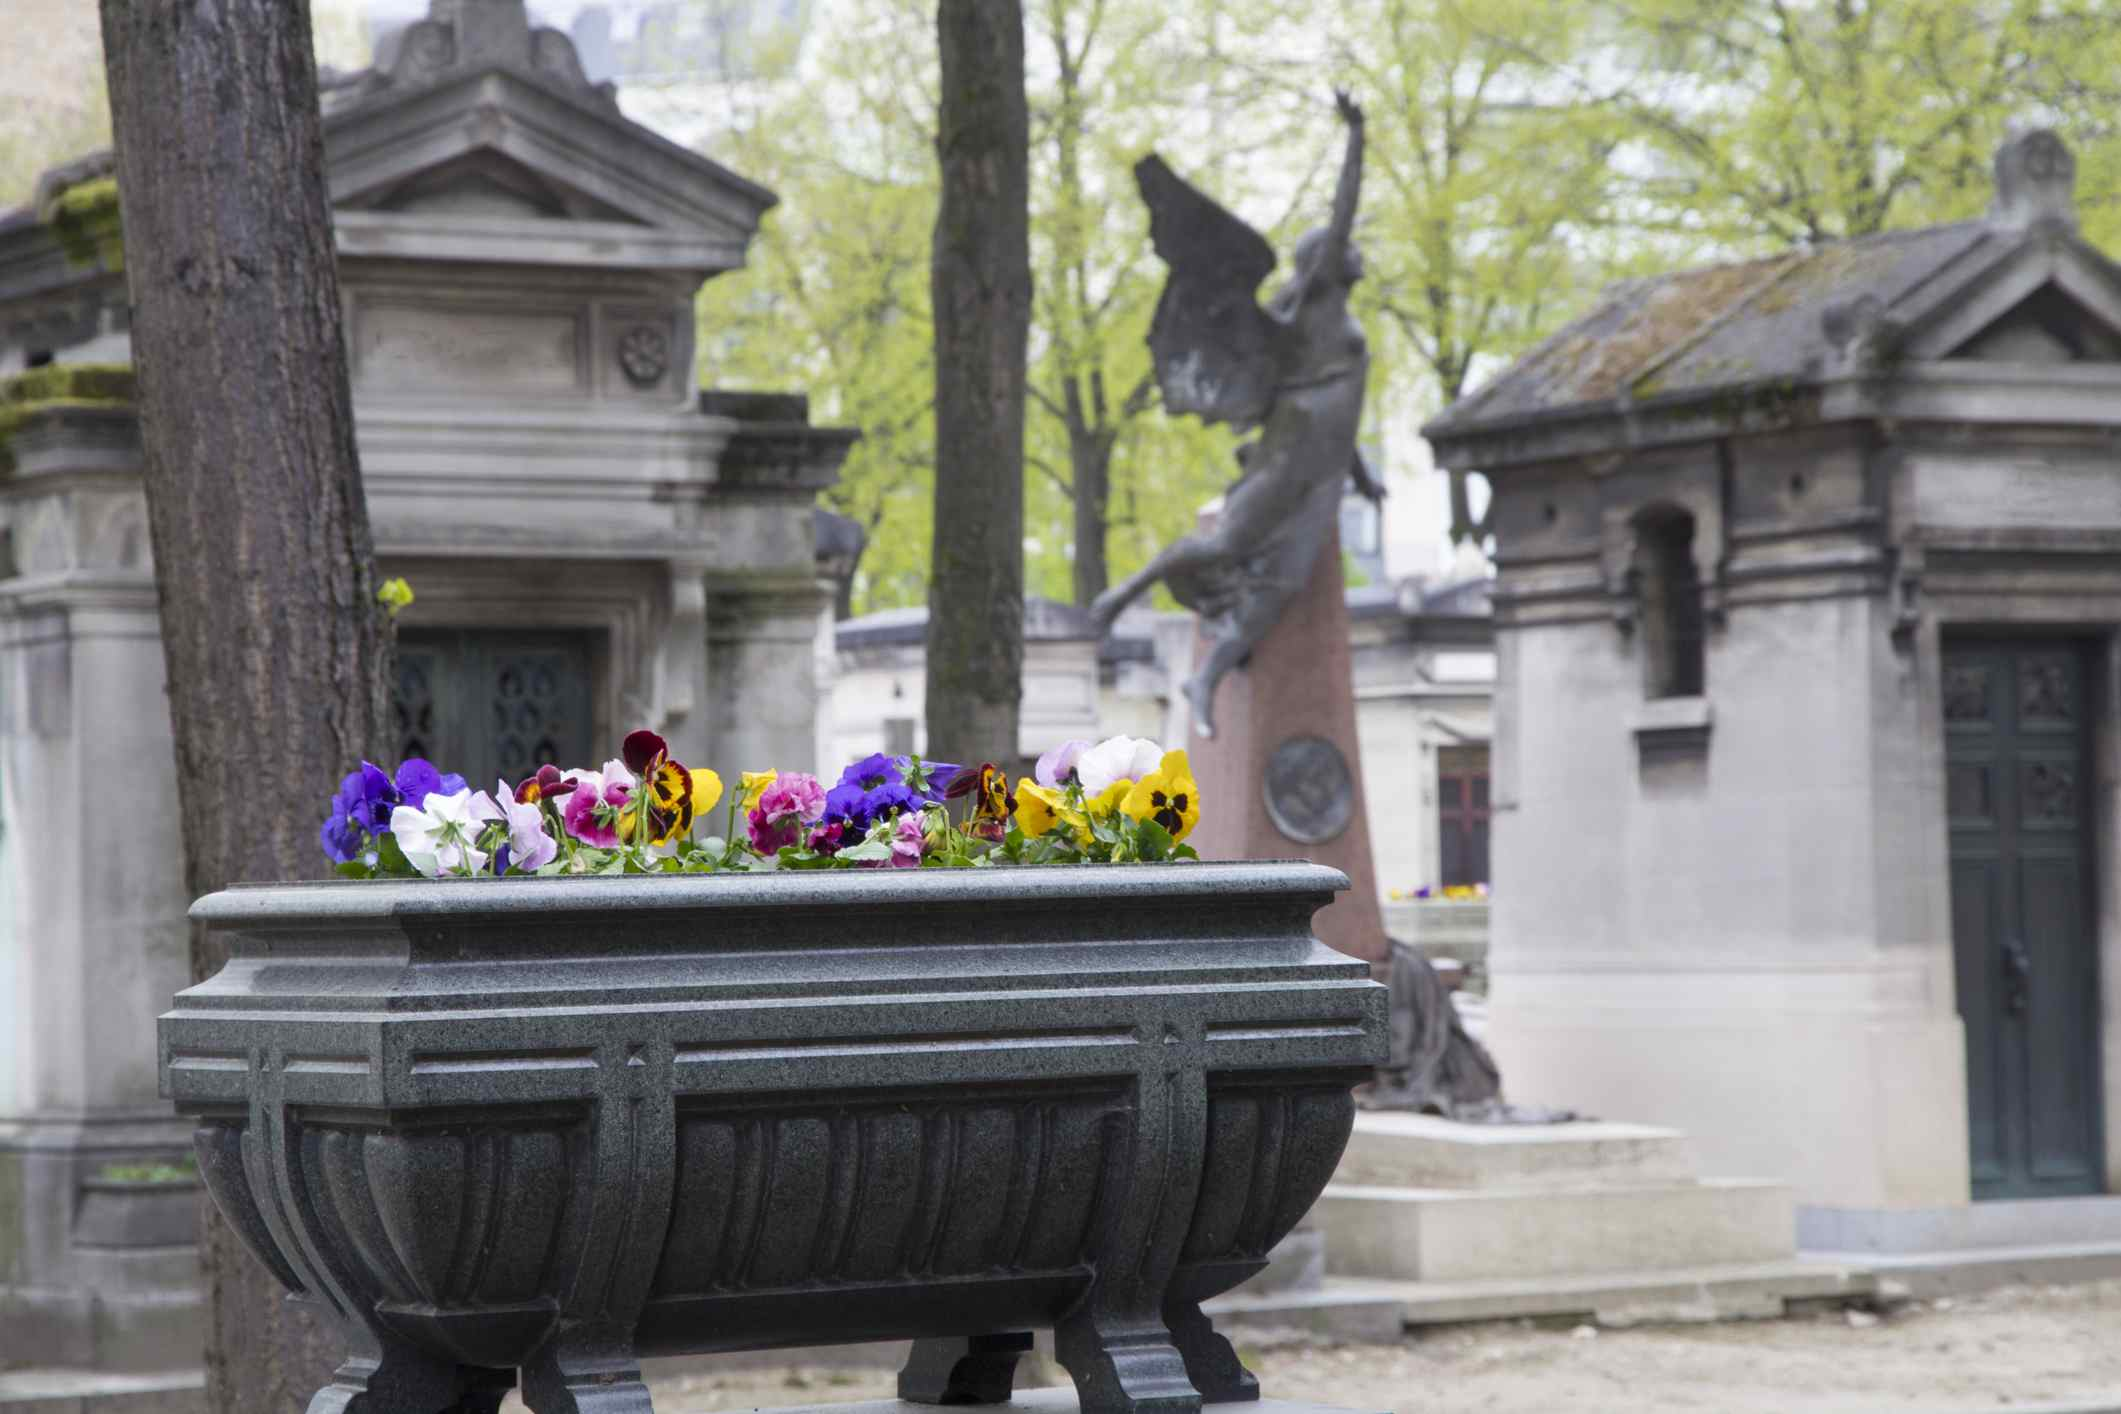 Pansies and violets in the Montparnasse Cemetery, Paris